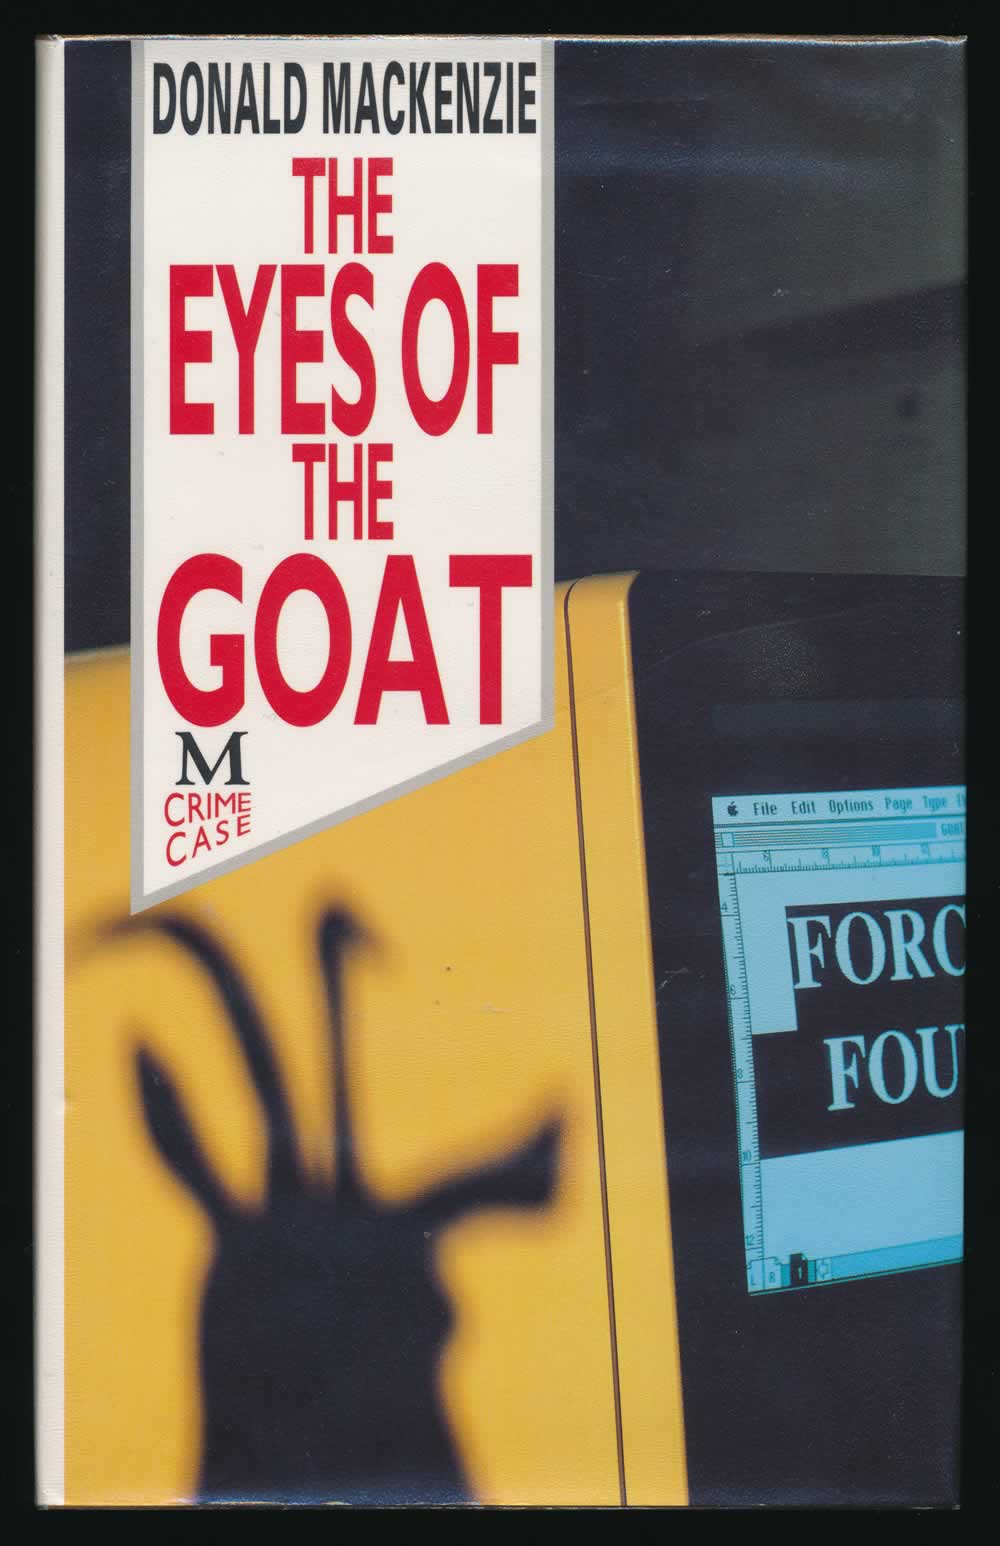 The eyes of a goat